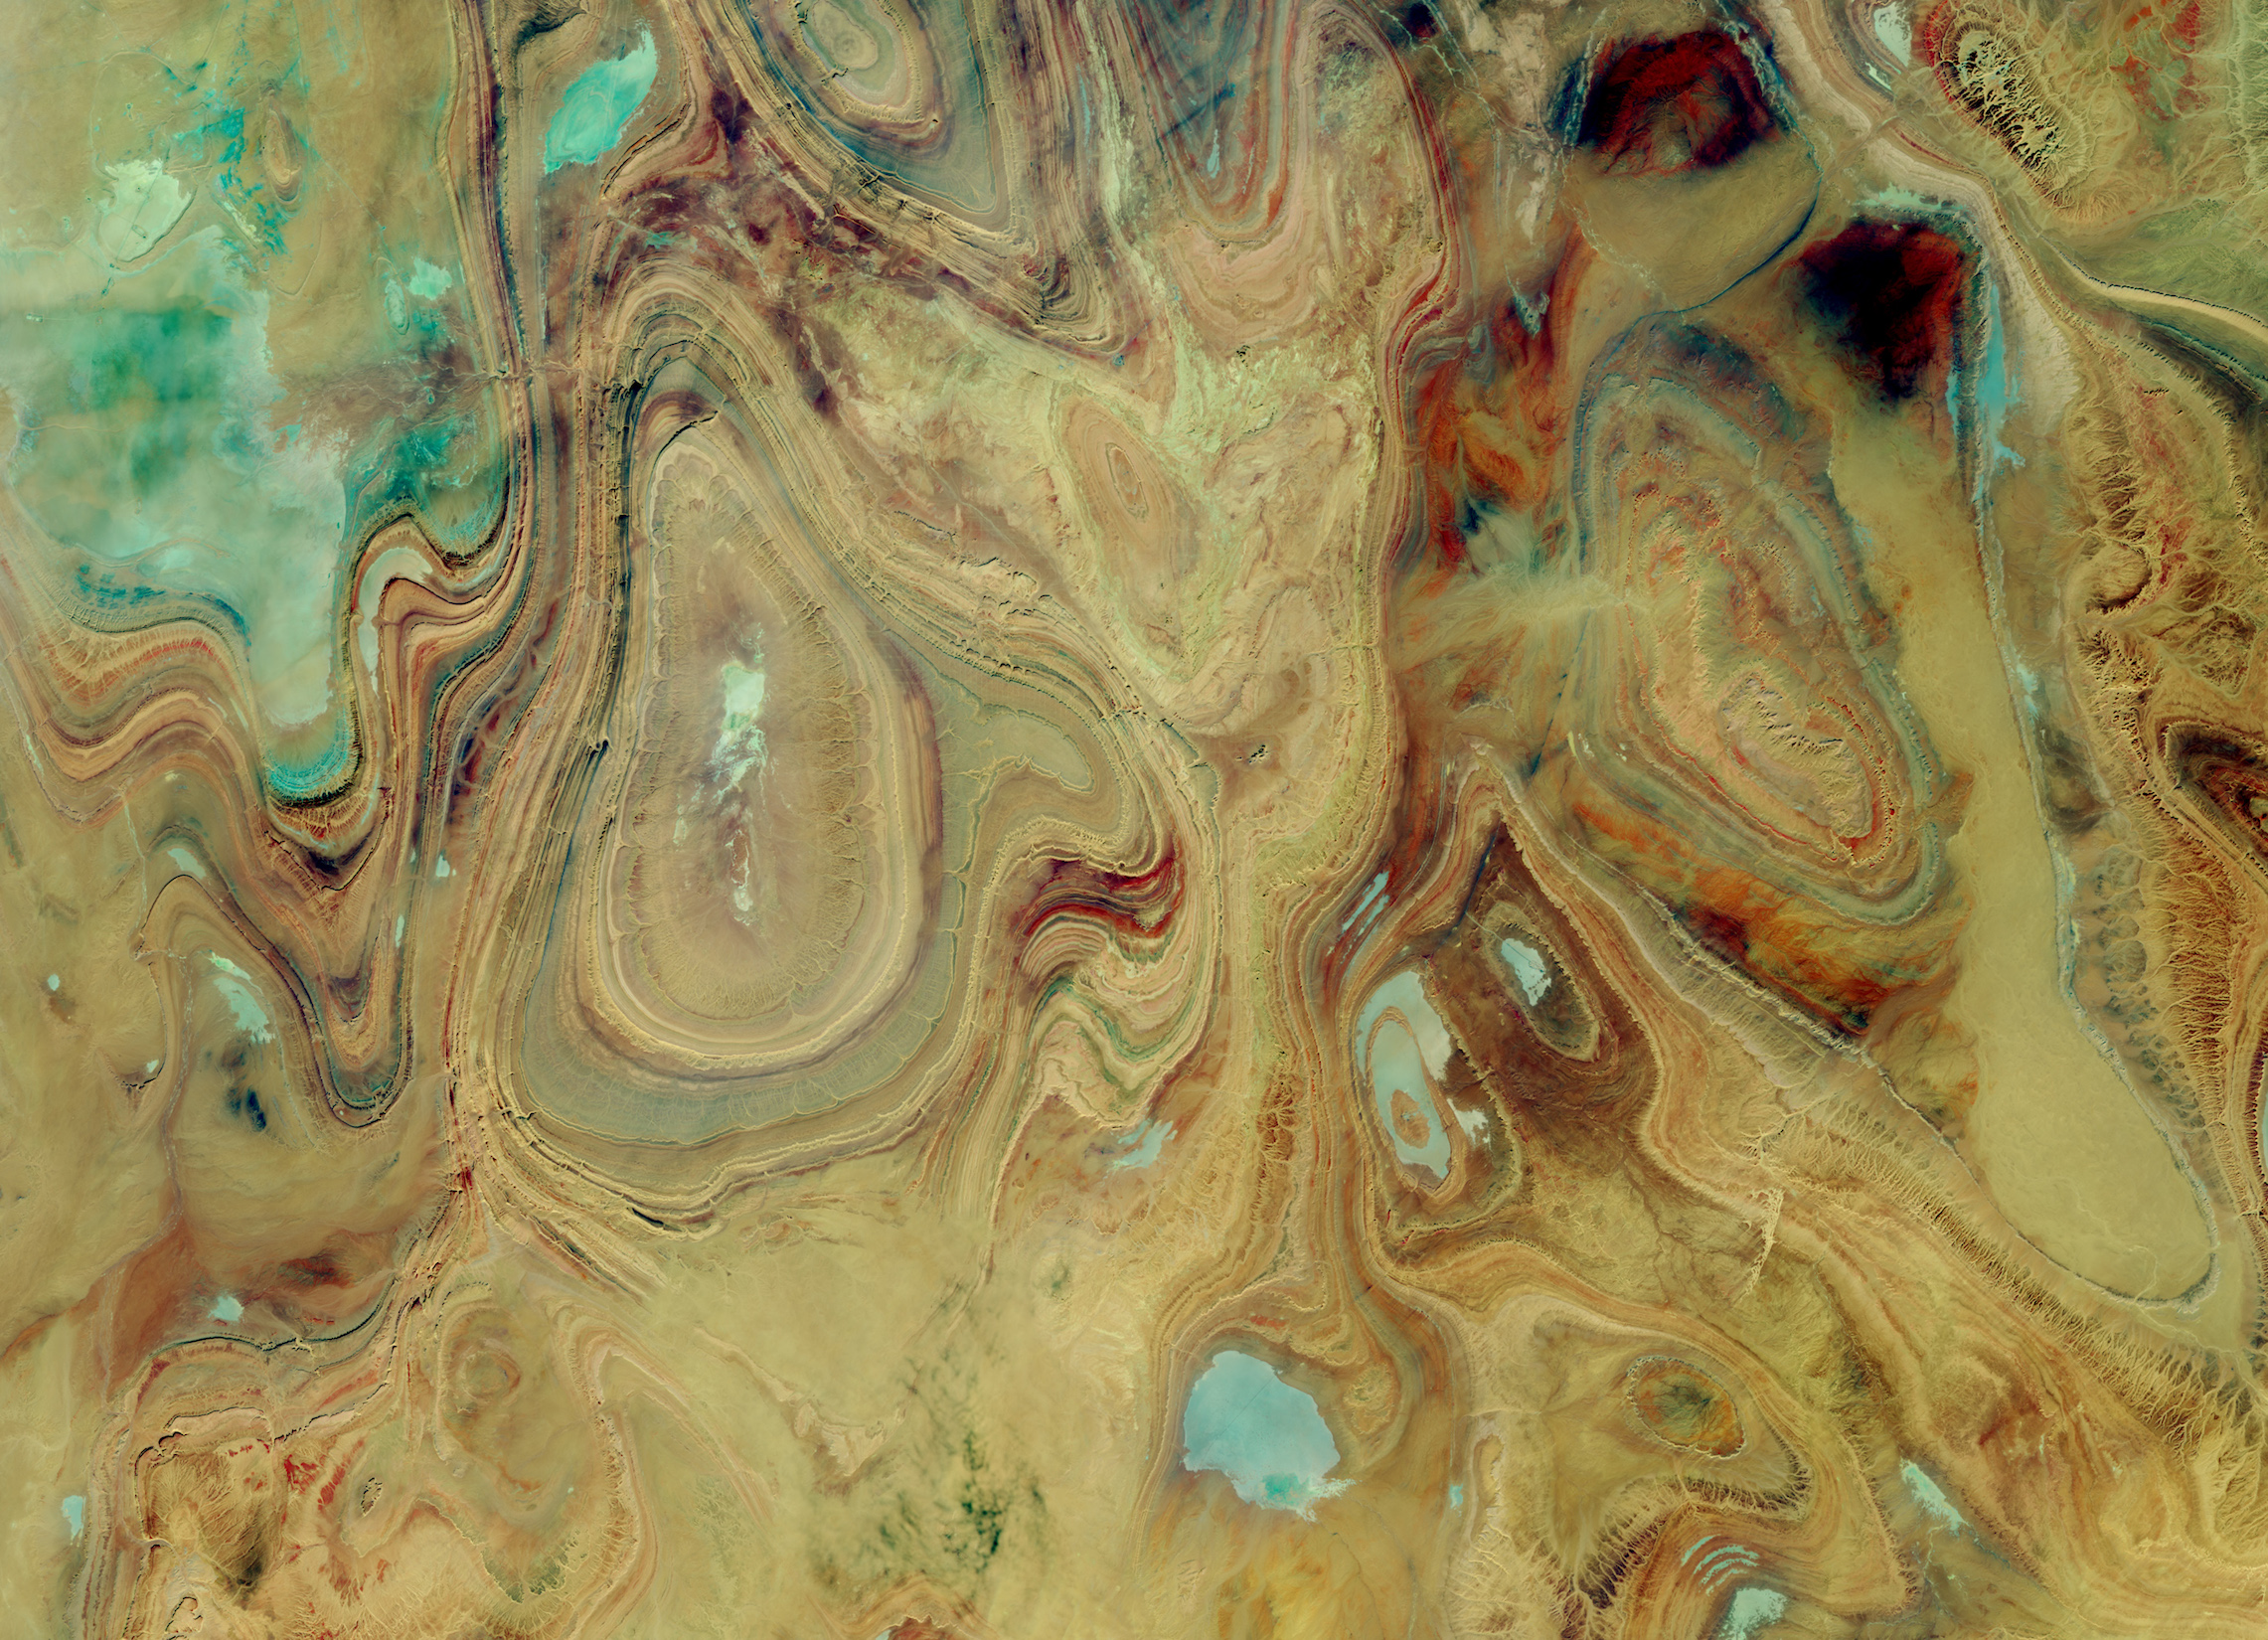 Today's Image of the Day comes courtesy of the NASA Earth Observatory and features a look at the Tanezrouft Basin in central Algeria.